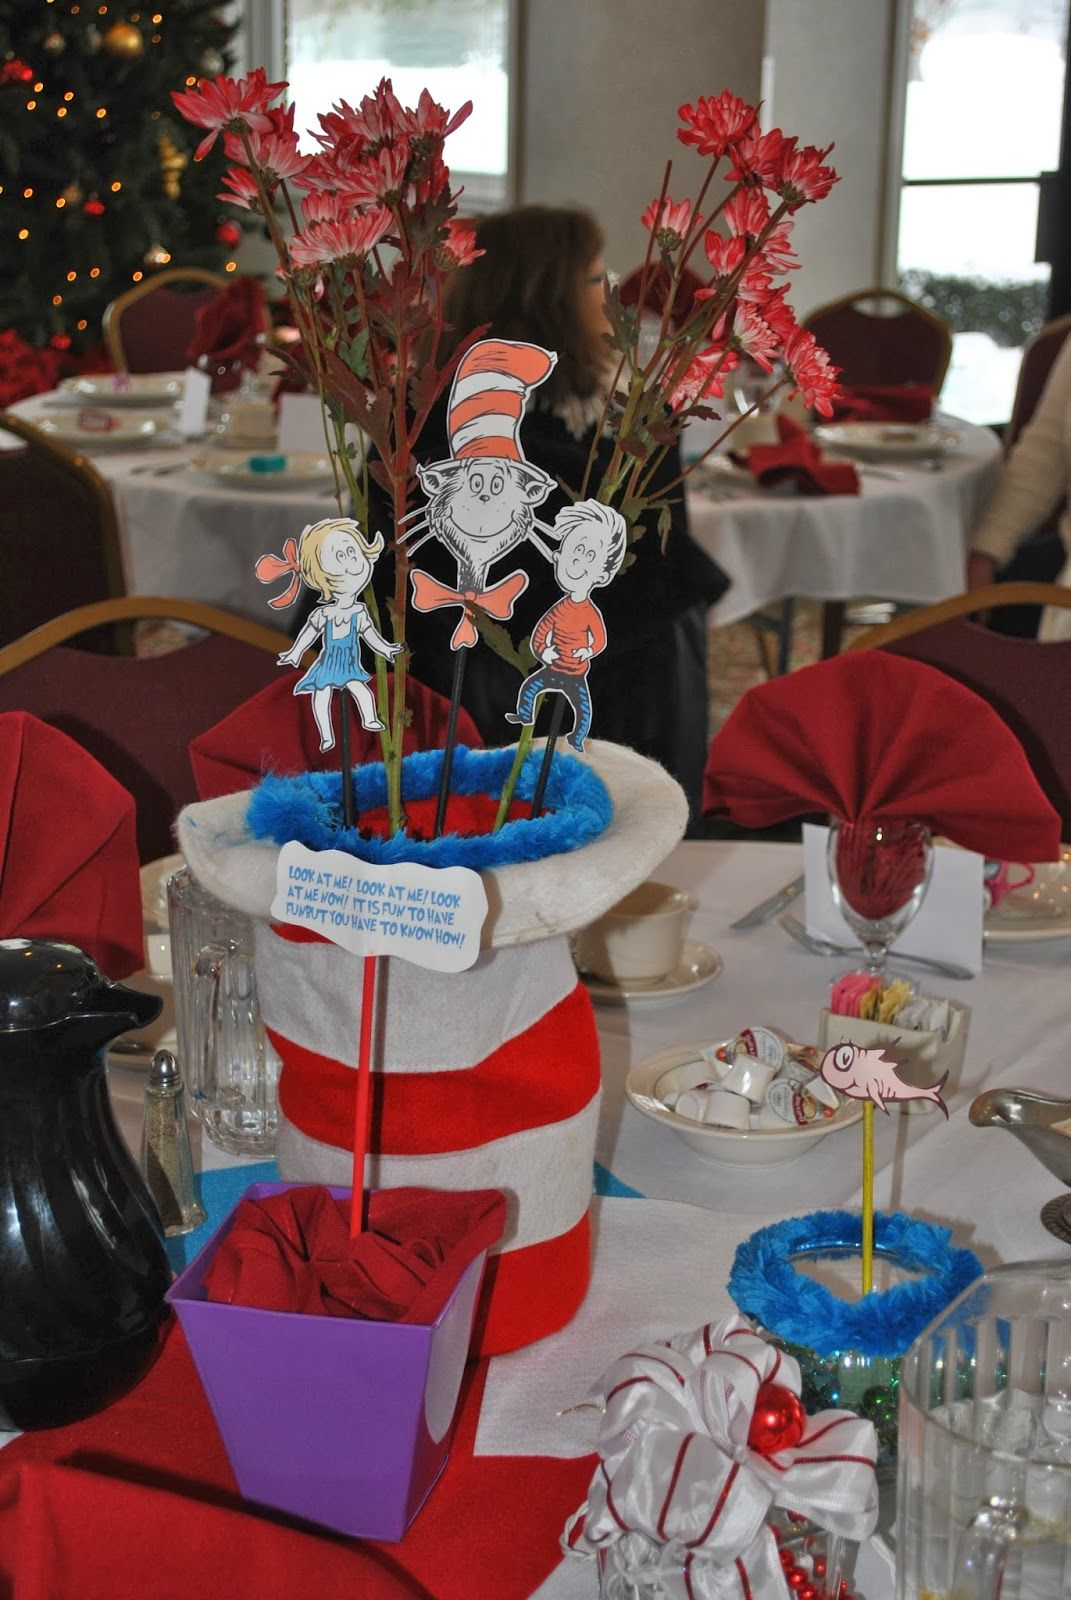 The Cat in the Hat baby shower centerpiece   Dr. Seuss ...